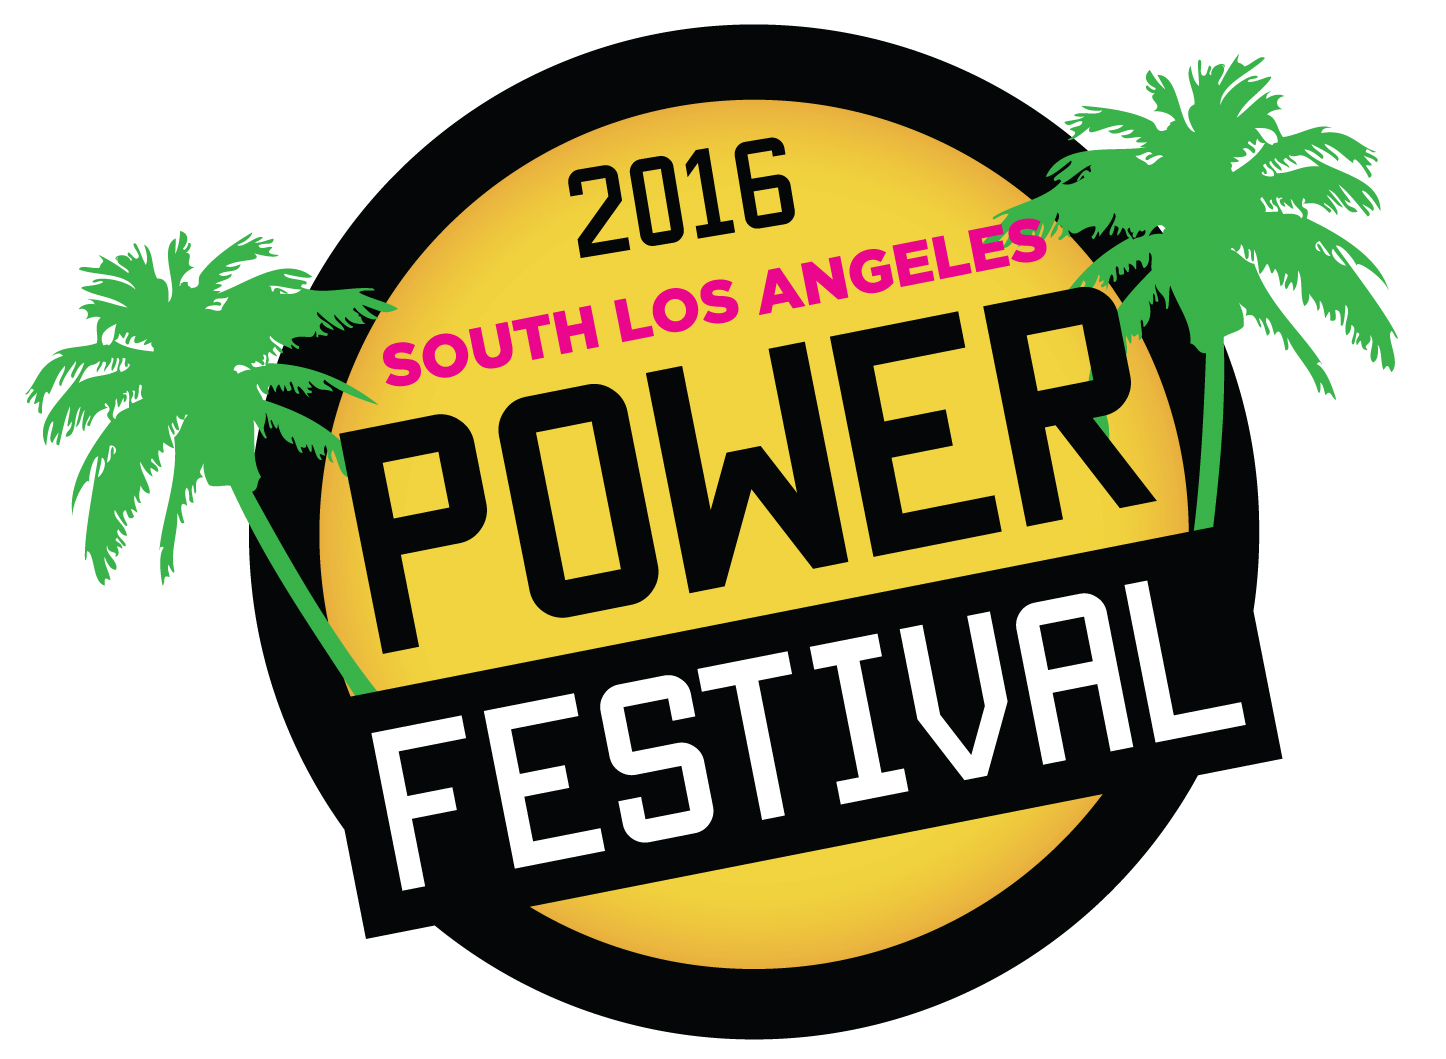 LA MUSIC NEWS: Bilal to Headline Community Coalition's Power Fest Music & Art Festival in South LA Over Labor Day Weekend